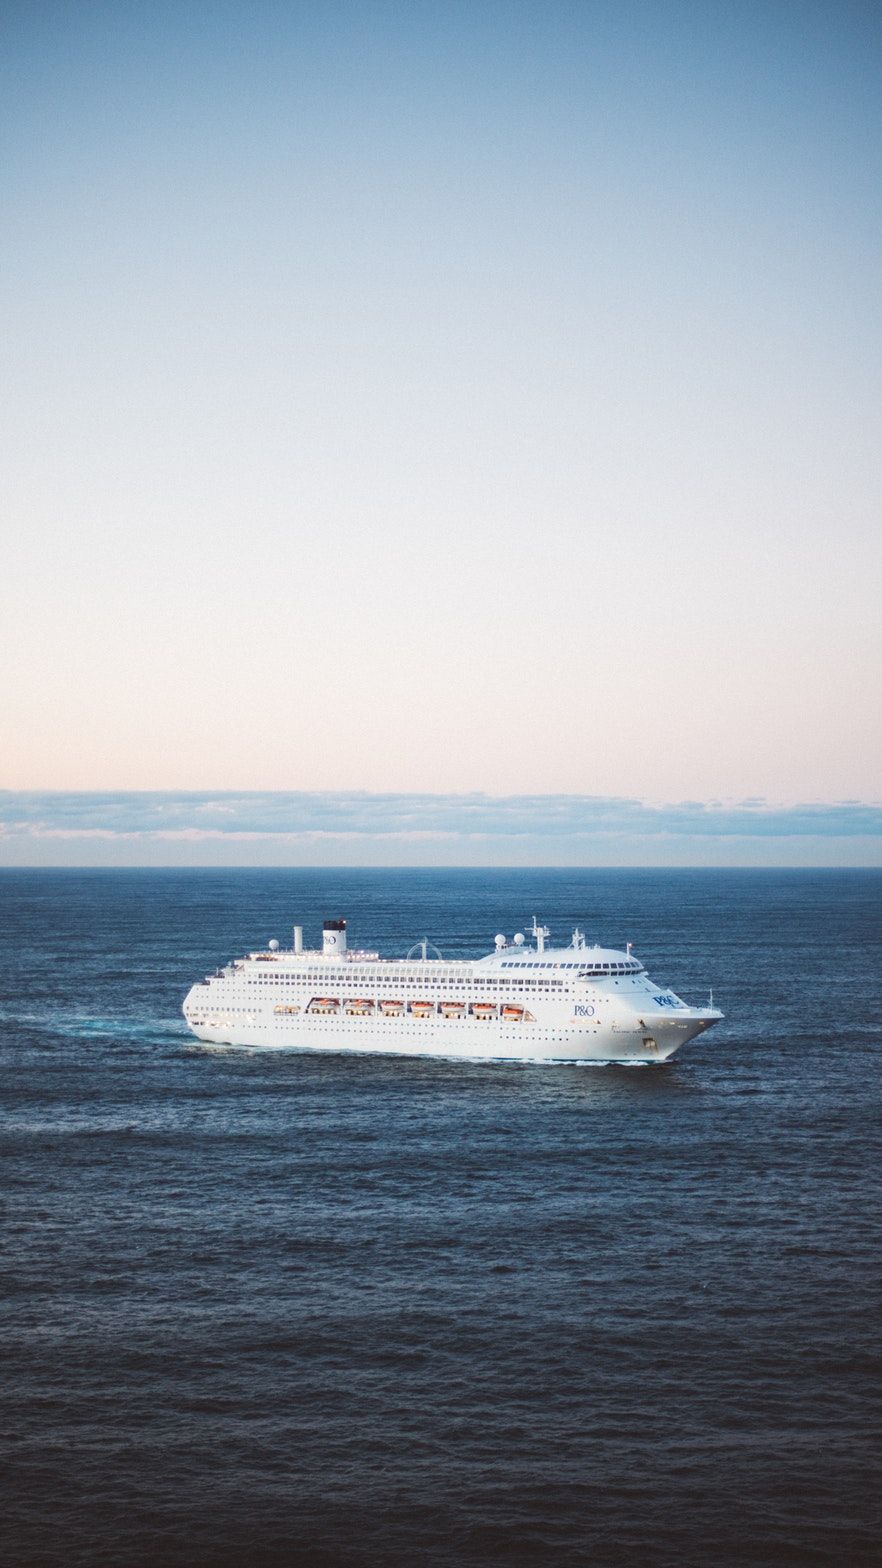 a_lonely_cruise_ship_that_wants_to_be_on_the_blog.jpeg